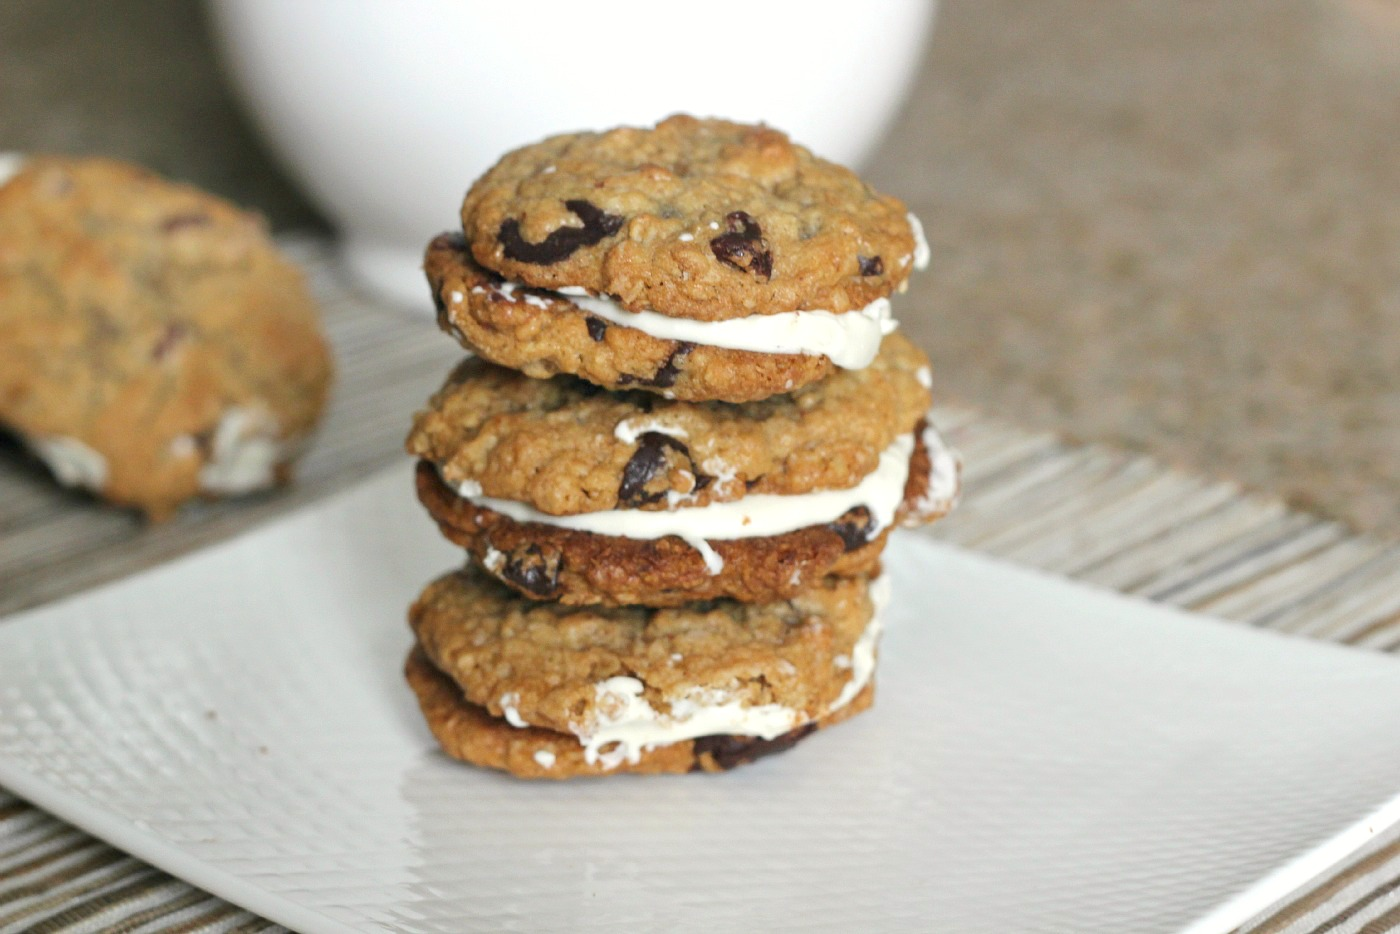 When I Was Much Much Younger And Had The Metabolism Of A Cheetah I Would Always Get One Of The Stuffed Double Chocolate Chip Cookies From Great American